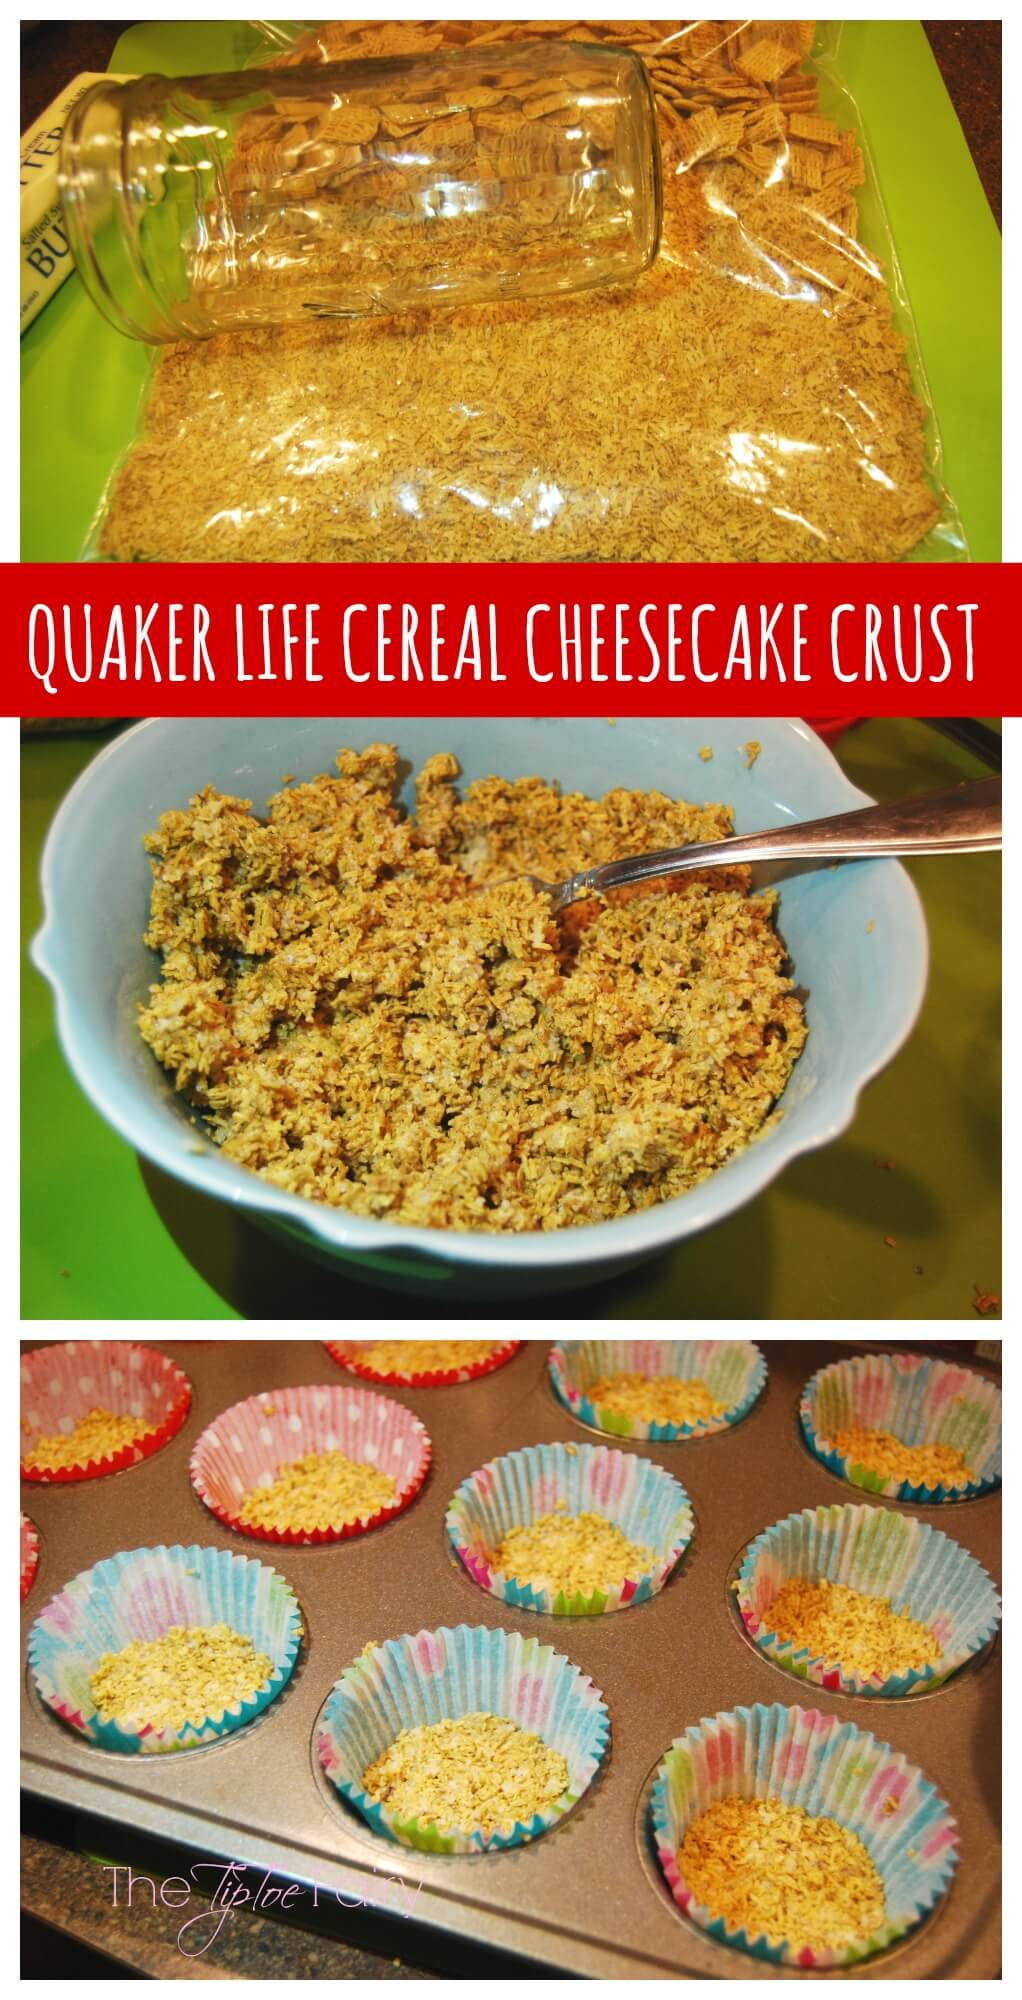 Apple Cider Mini Cheesecakes - perfect for the holidays or anytime | The TipToe Fairy #LoveMyCereal #QuakerUp #spon #cheesecake